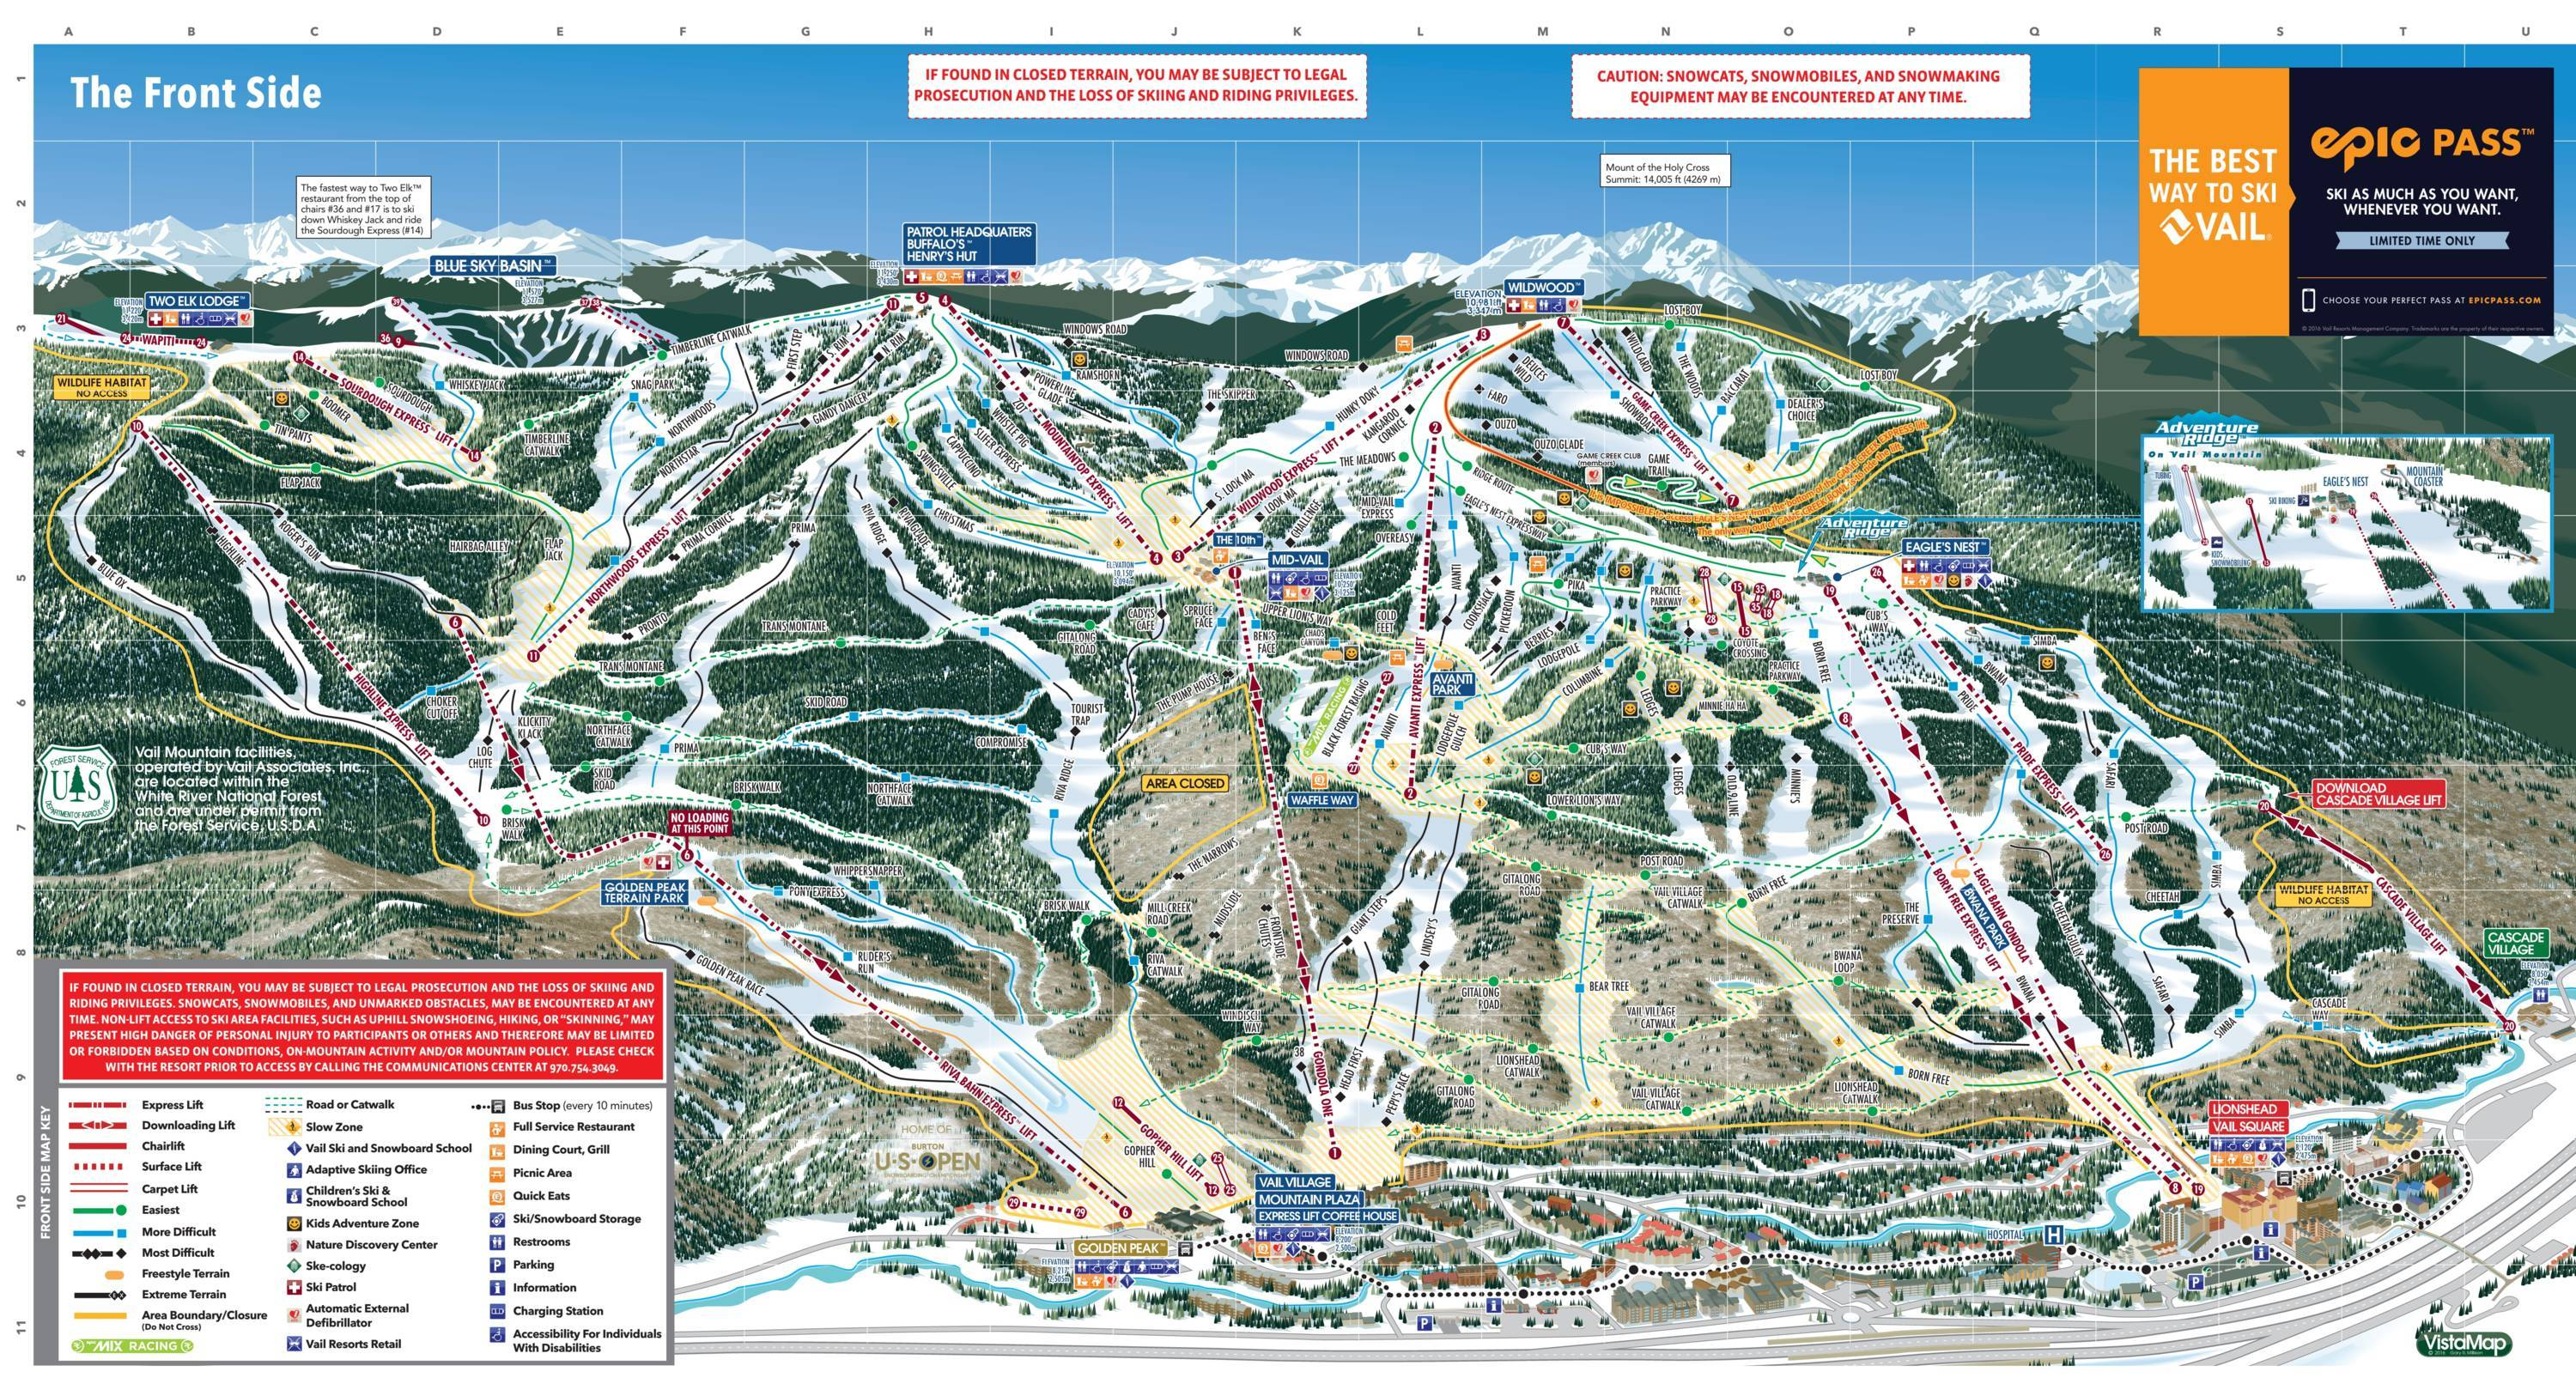 Map Of Vail Vail   SkiMap.org Map Of Vail